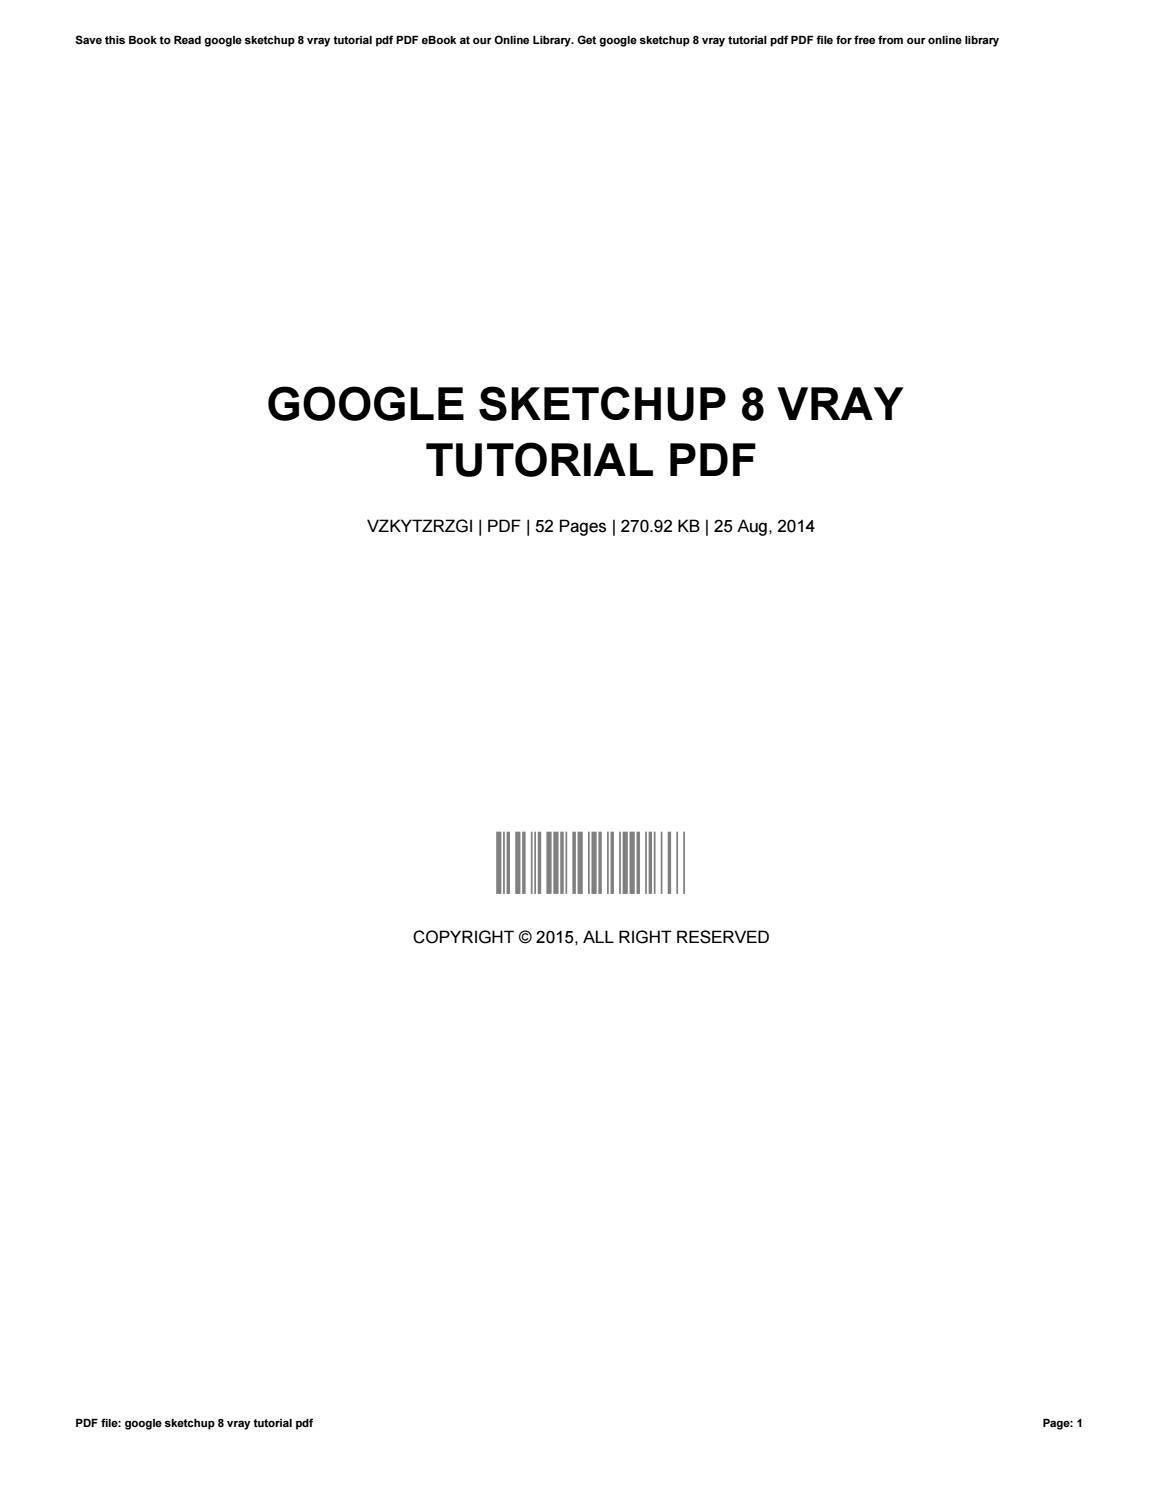 Google sketchup 8 vray tutorial pdf by williamivey2927 issuu.